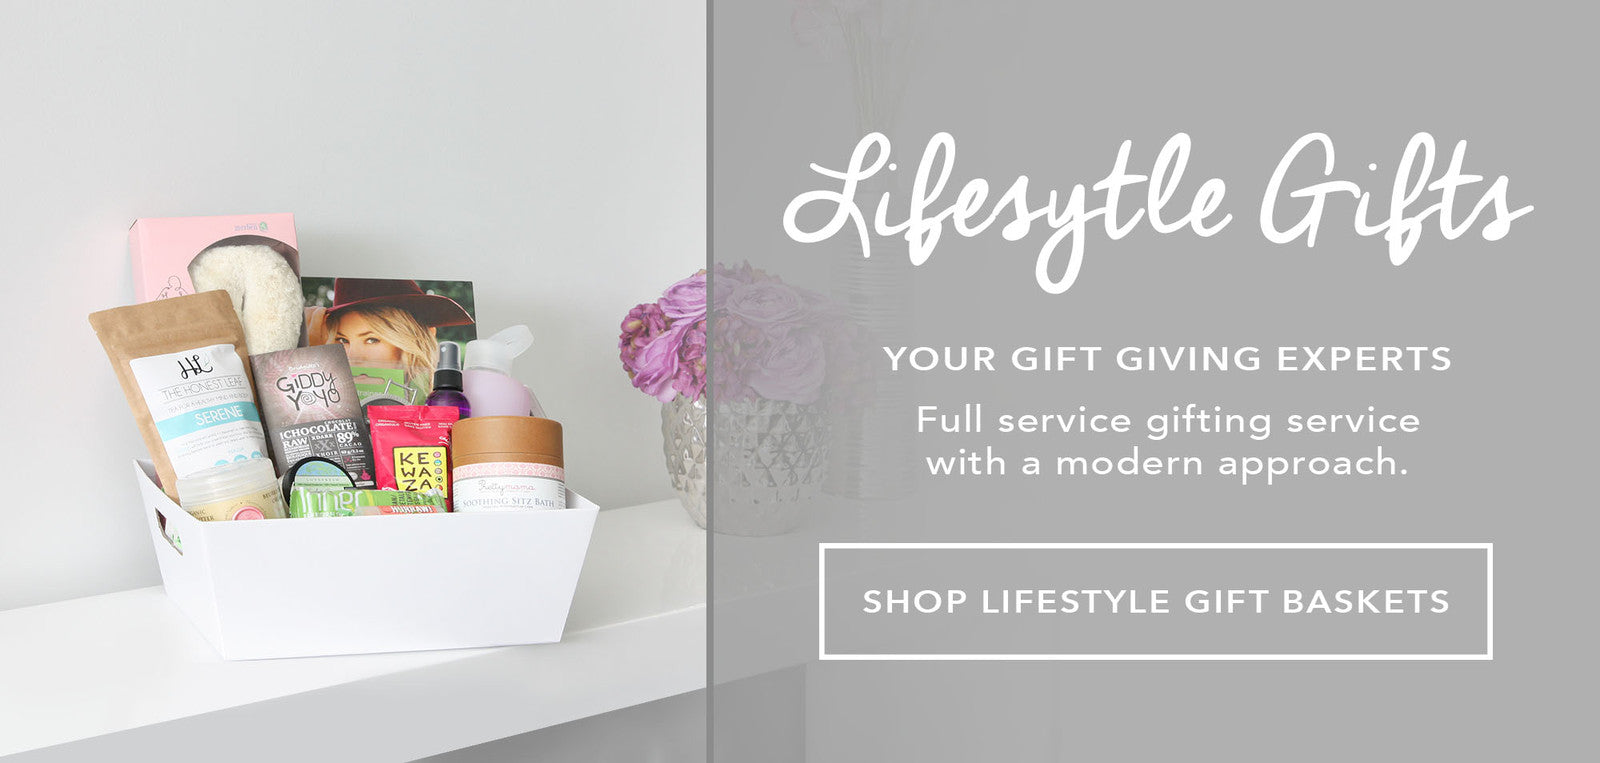 Lifestyle Gift Baskets